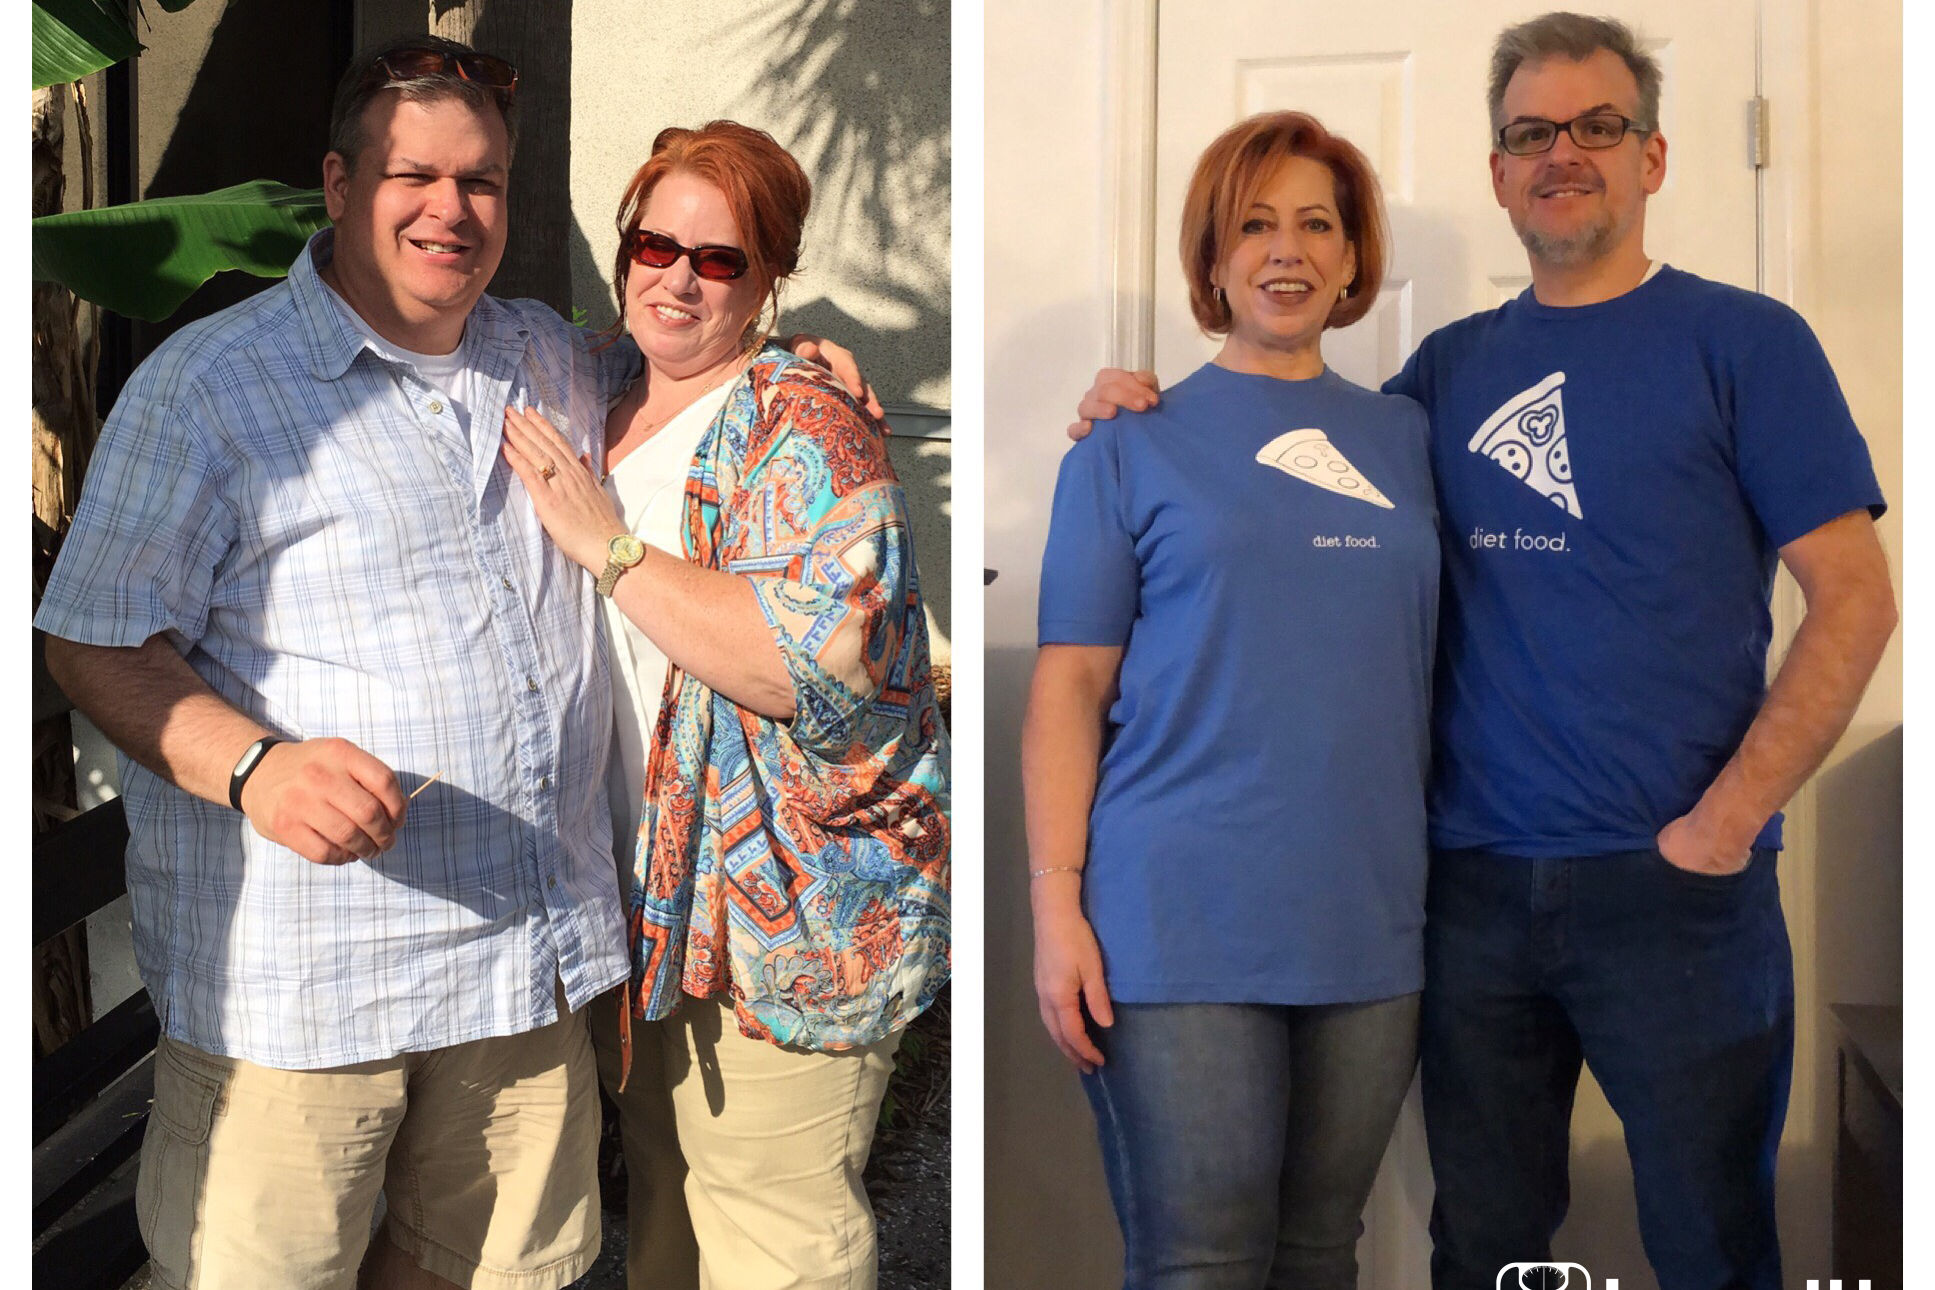 Georgia Couple Who Own Cake Shop Lose 220 Pounds Together